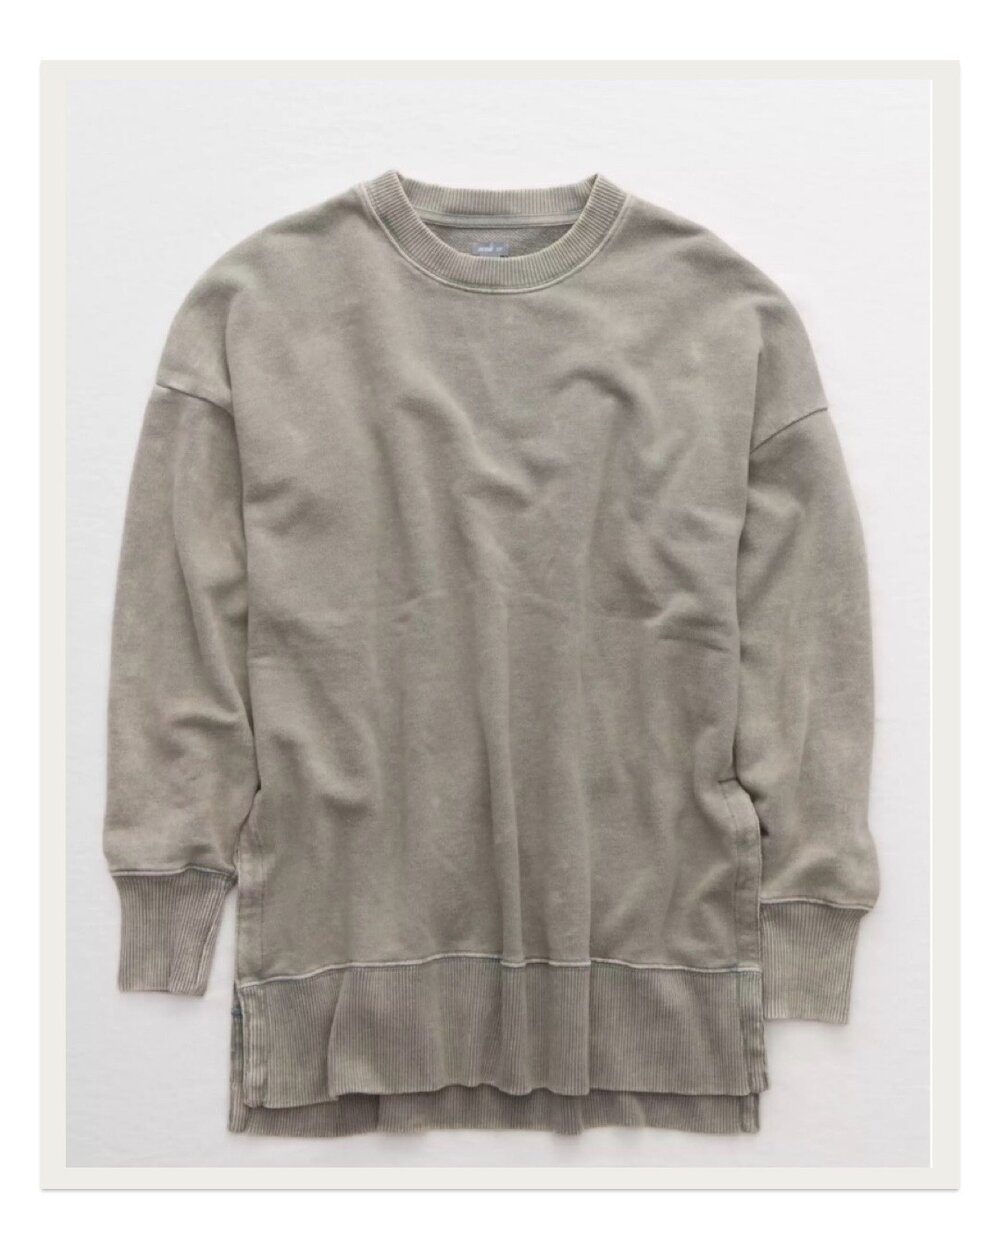 Can you tell I'm loving Aerie lately? There's just something about these washed out colors and soft fabrics that have me swooning. This Oversized Desert Sweatshirt feels like a worn-in favorite the second you put it on.